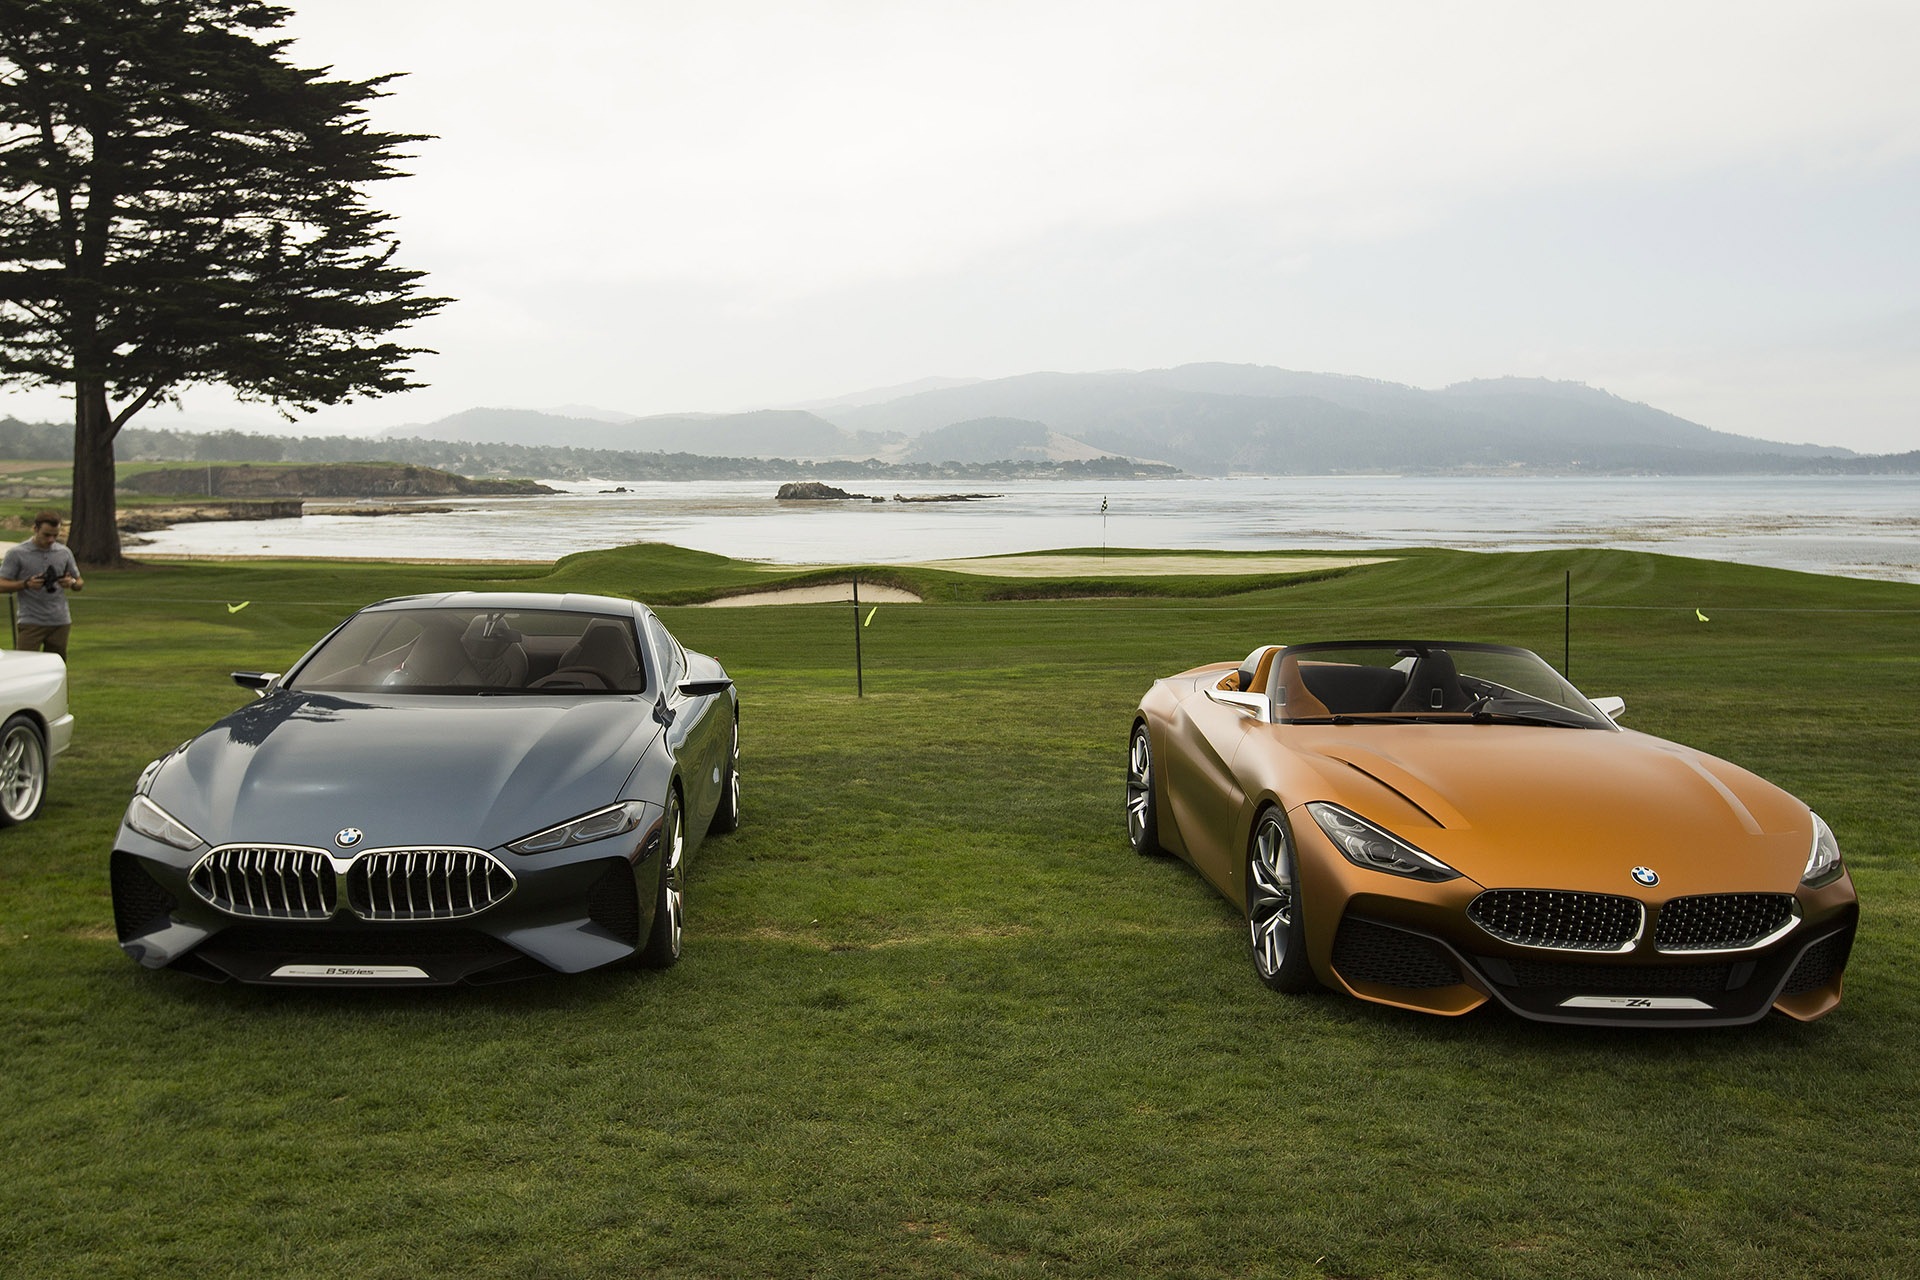 2017 Monterey The New Bmw Concept Z4 Picks Up Where The